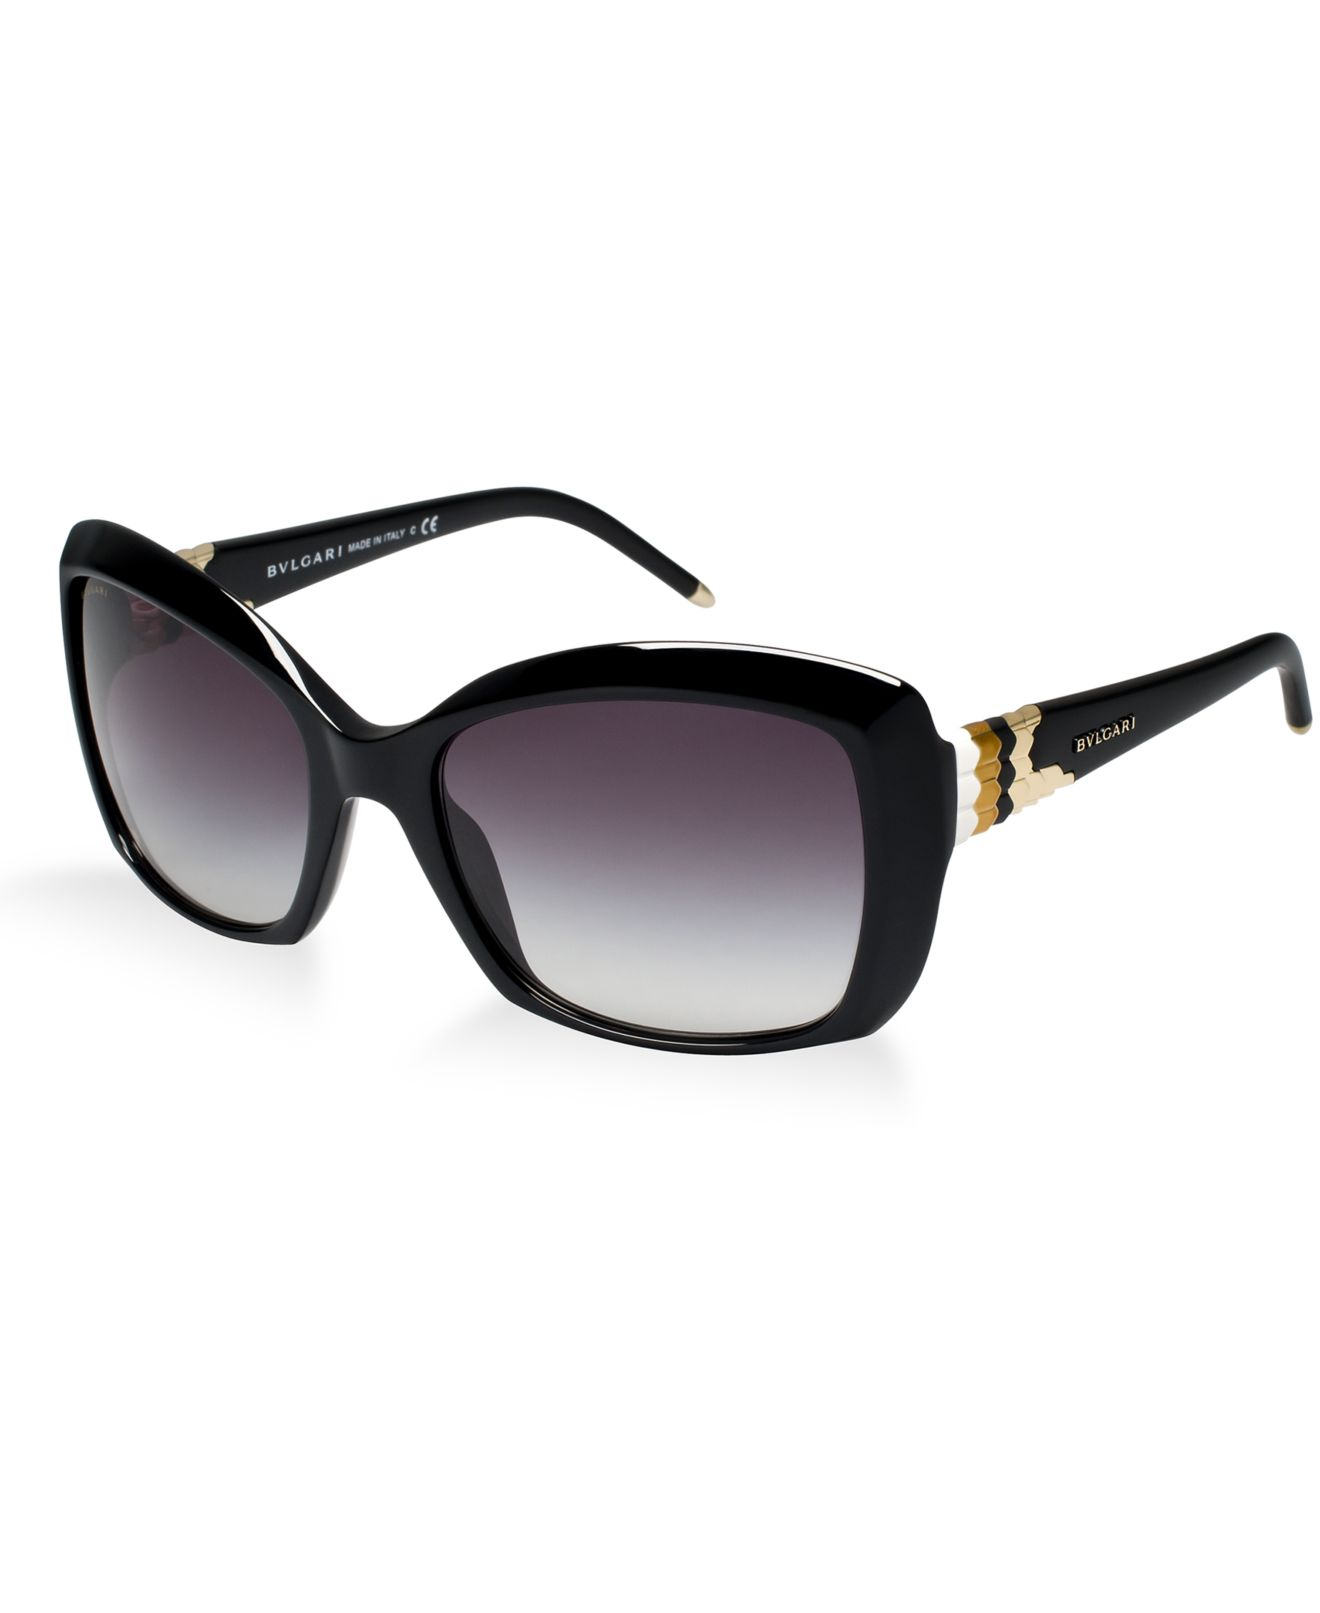 Bvlgari Sunglasses uk Bvlgari Sunglasses Bvlgari